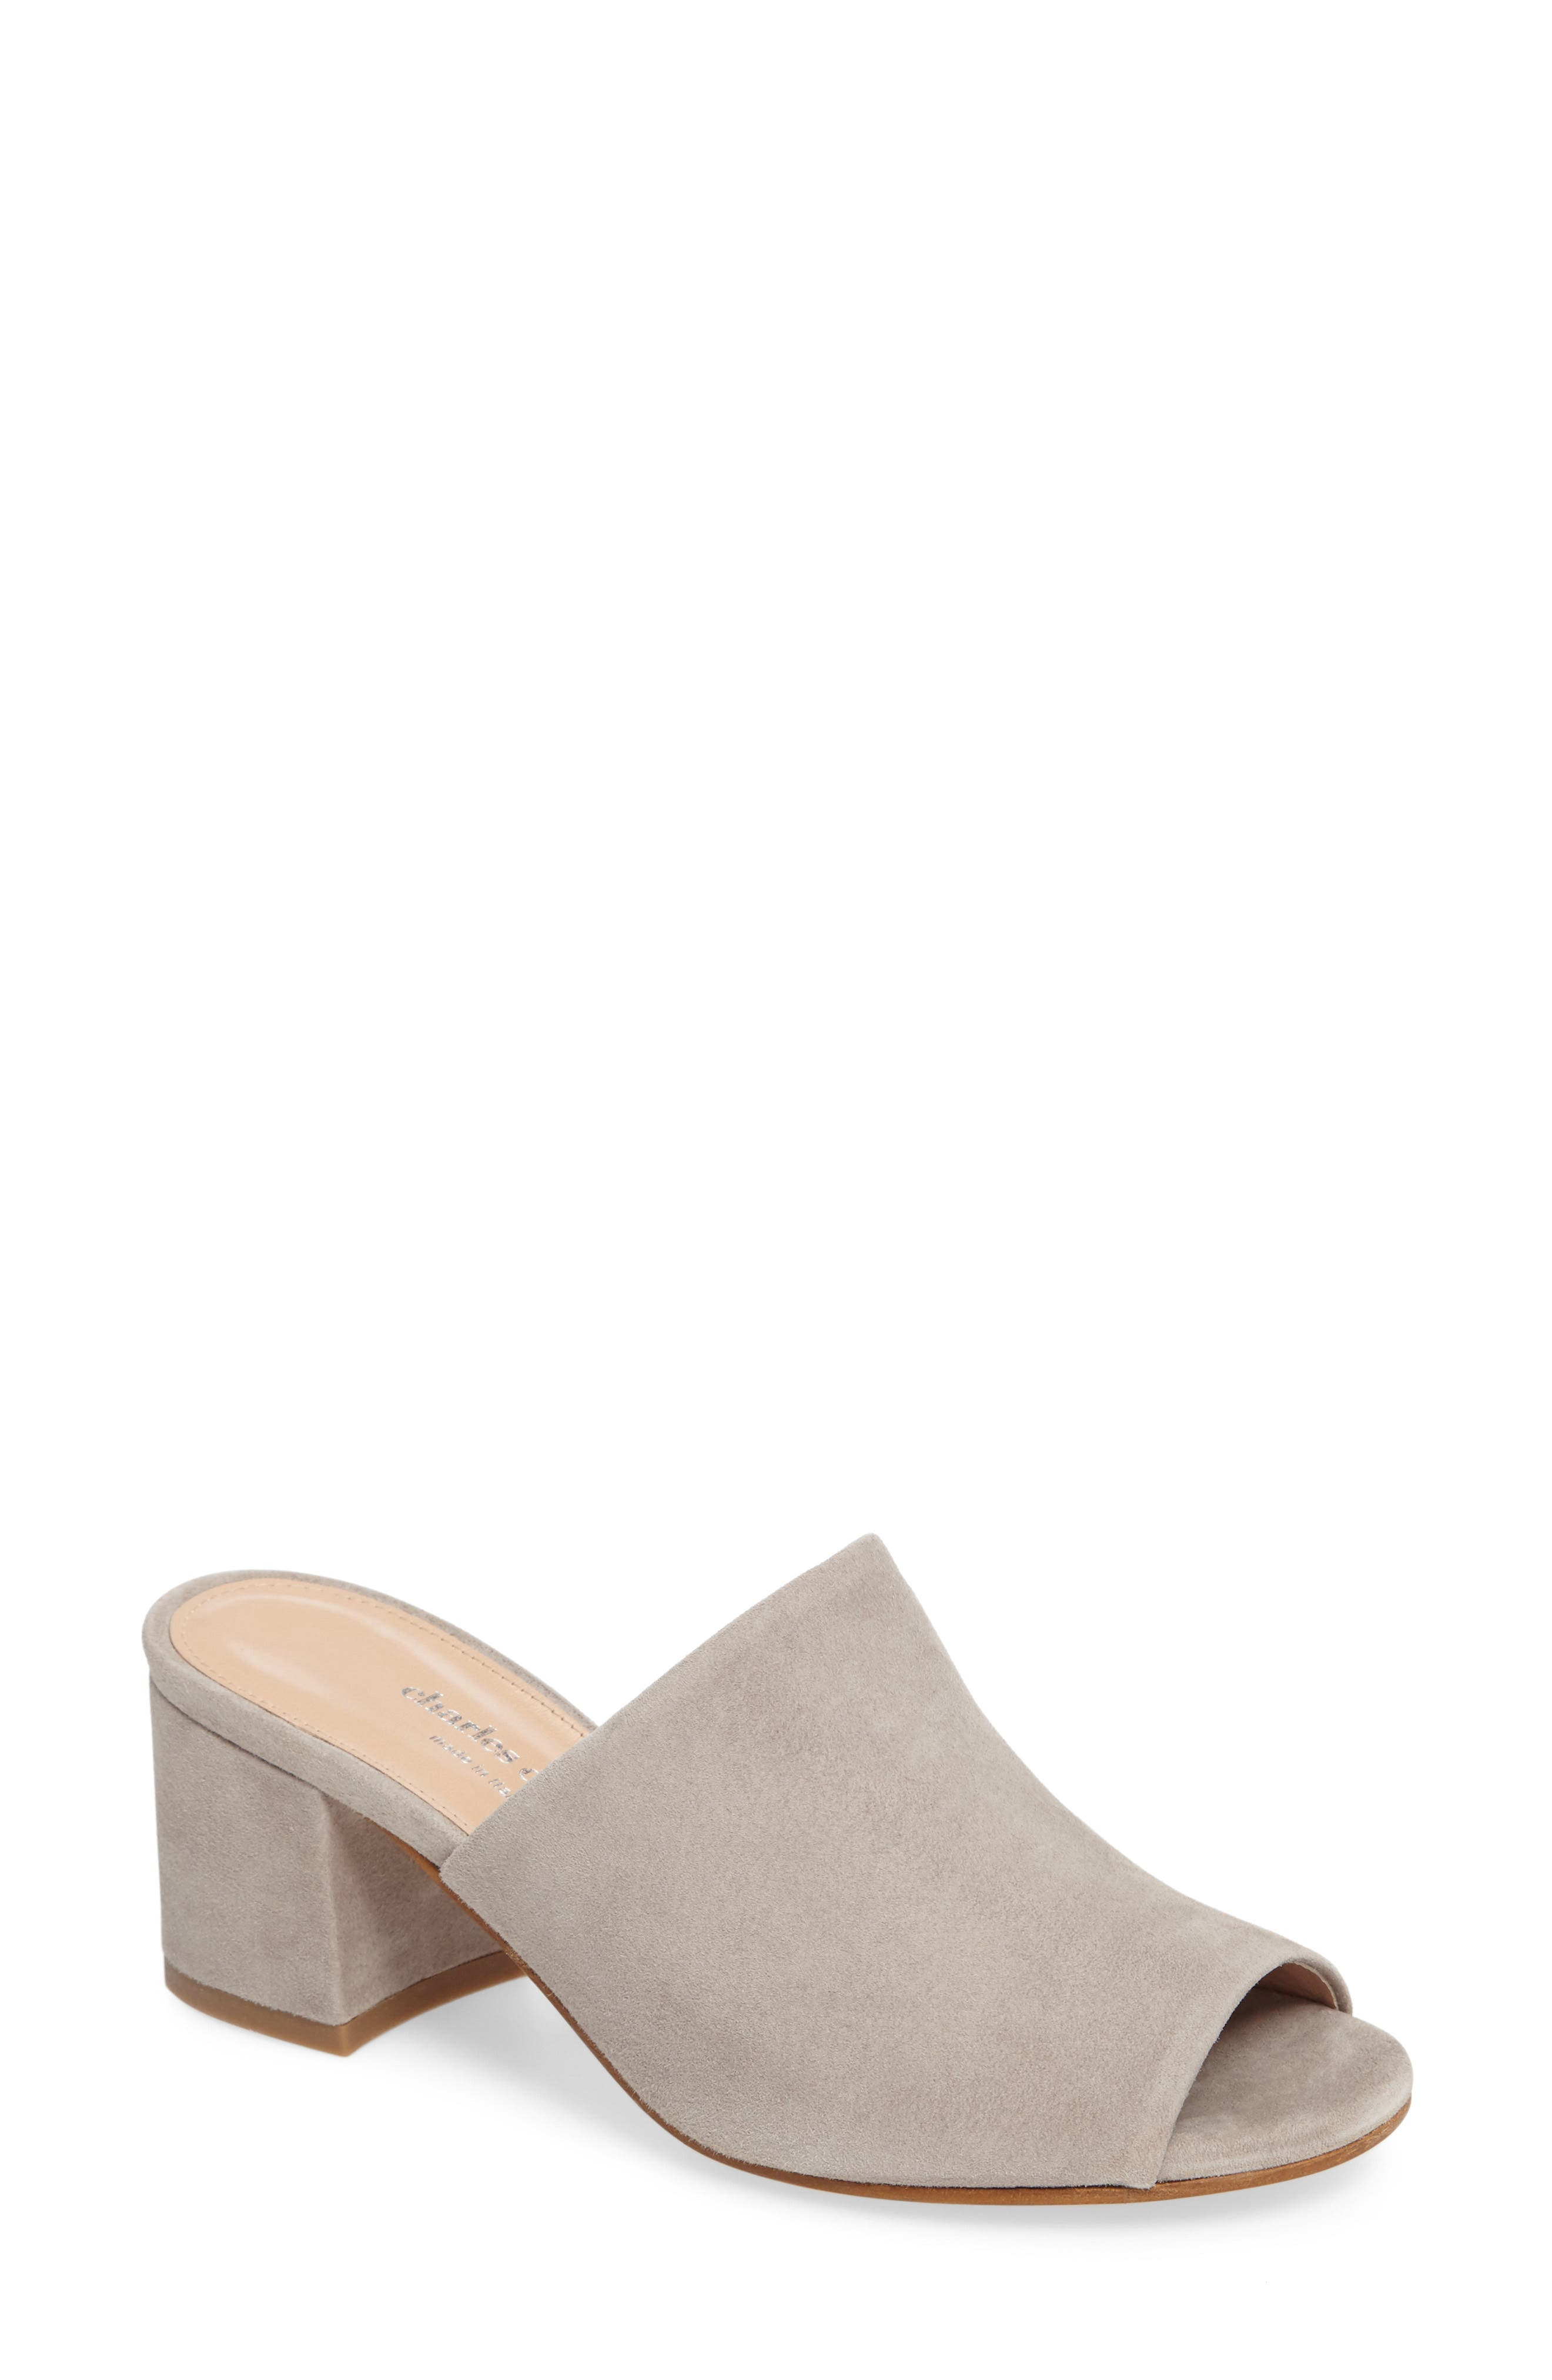 Charles by Charles David Brie Open Toe Slide (Women)